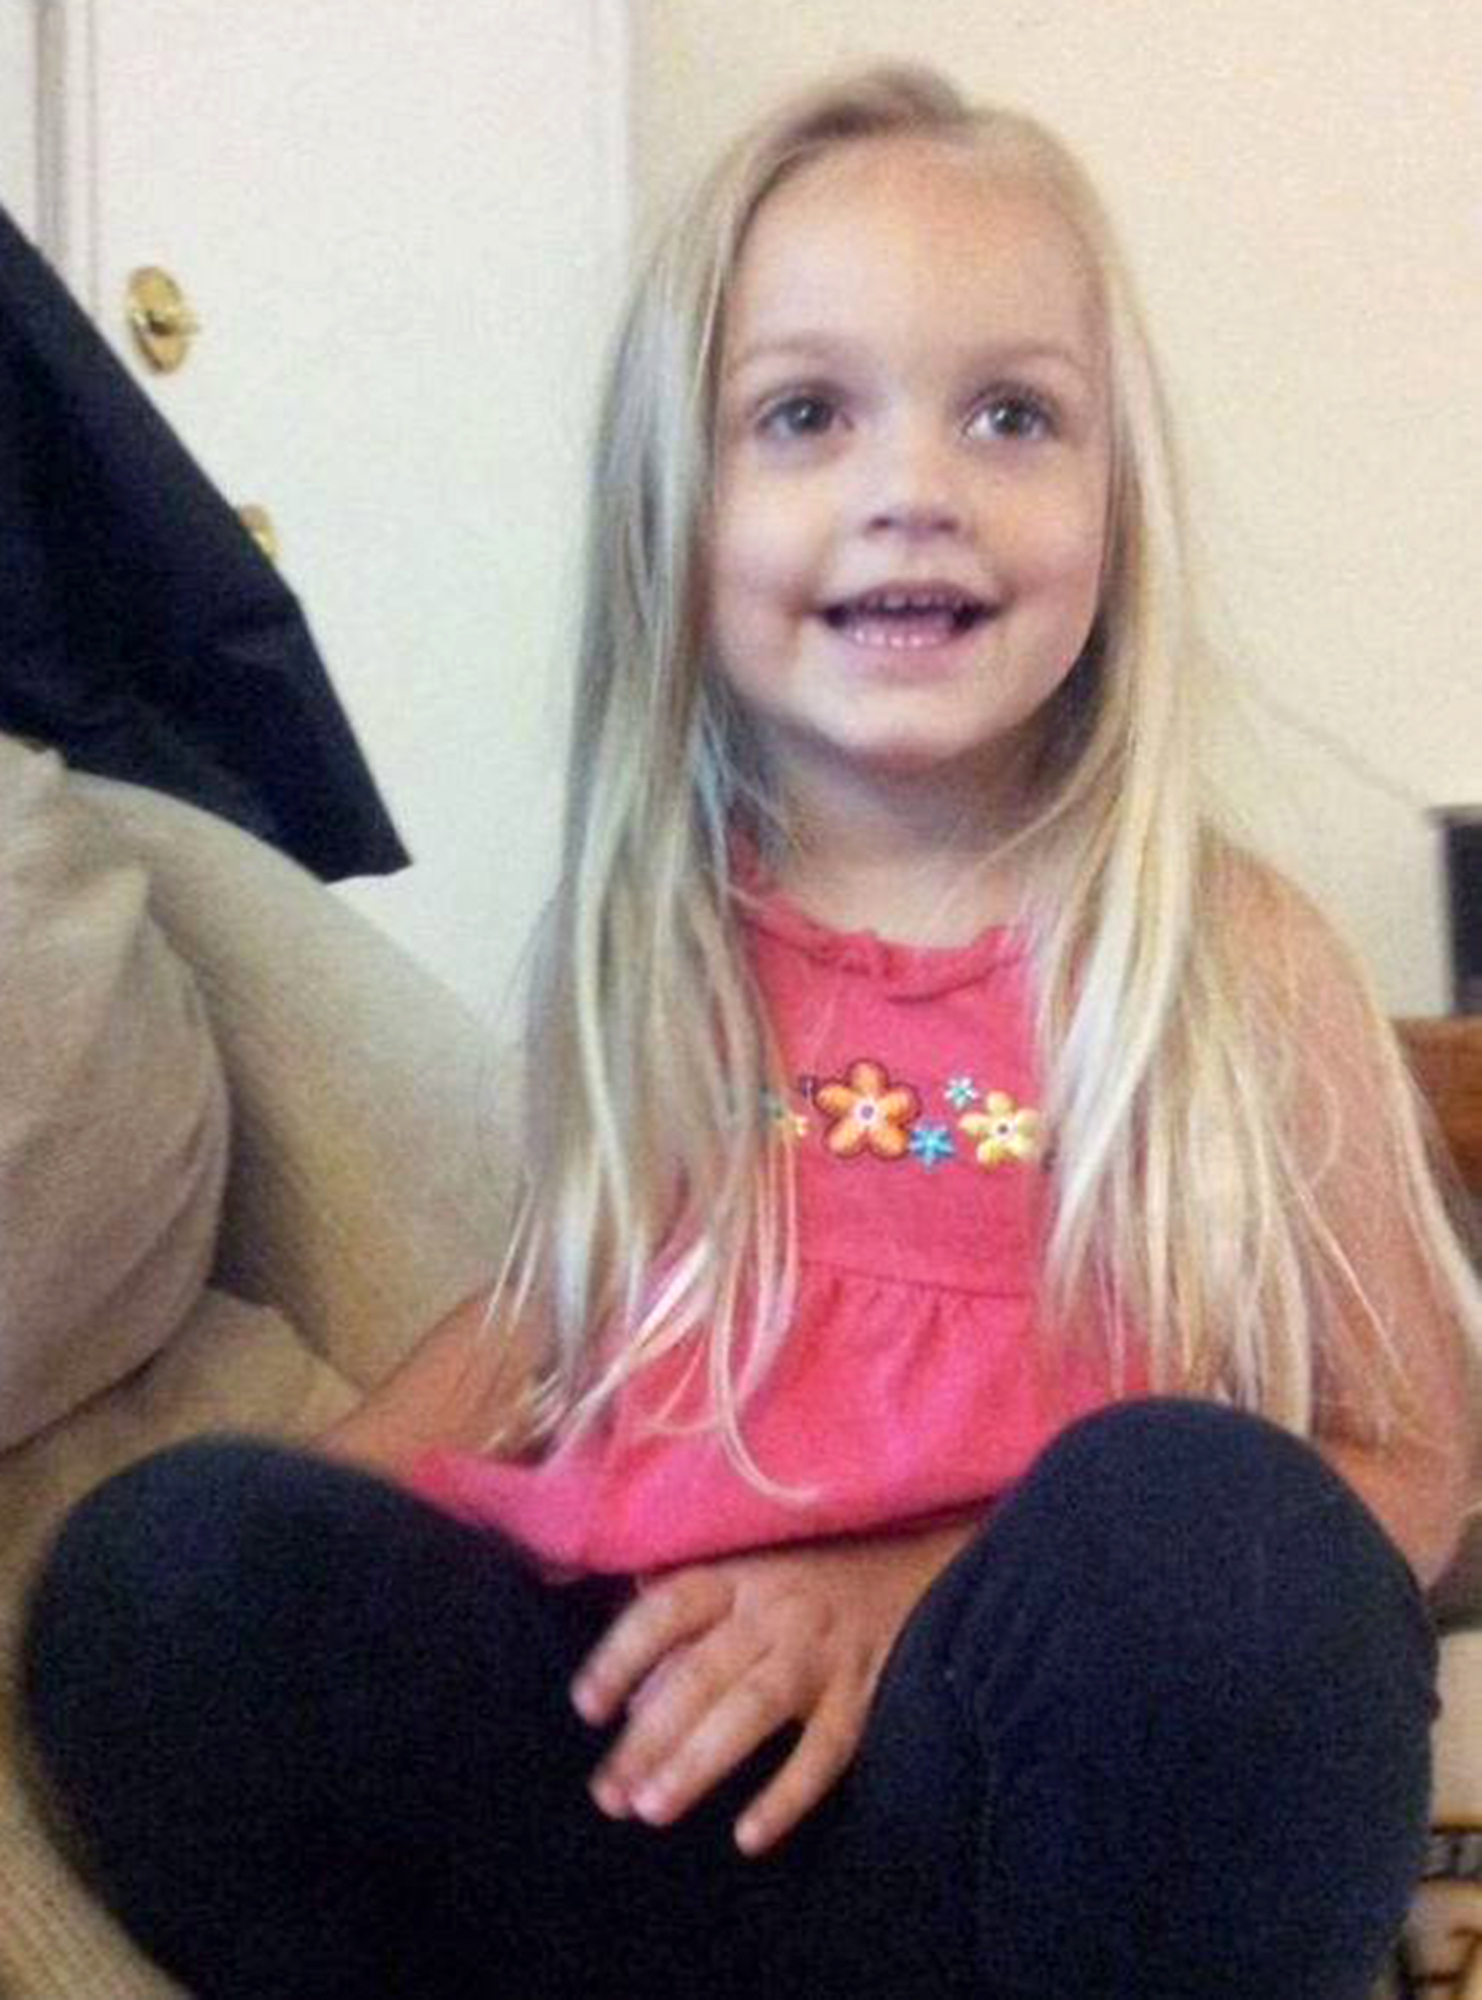 3 year old who got killed by her mom